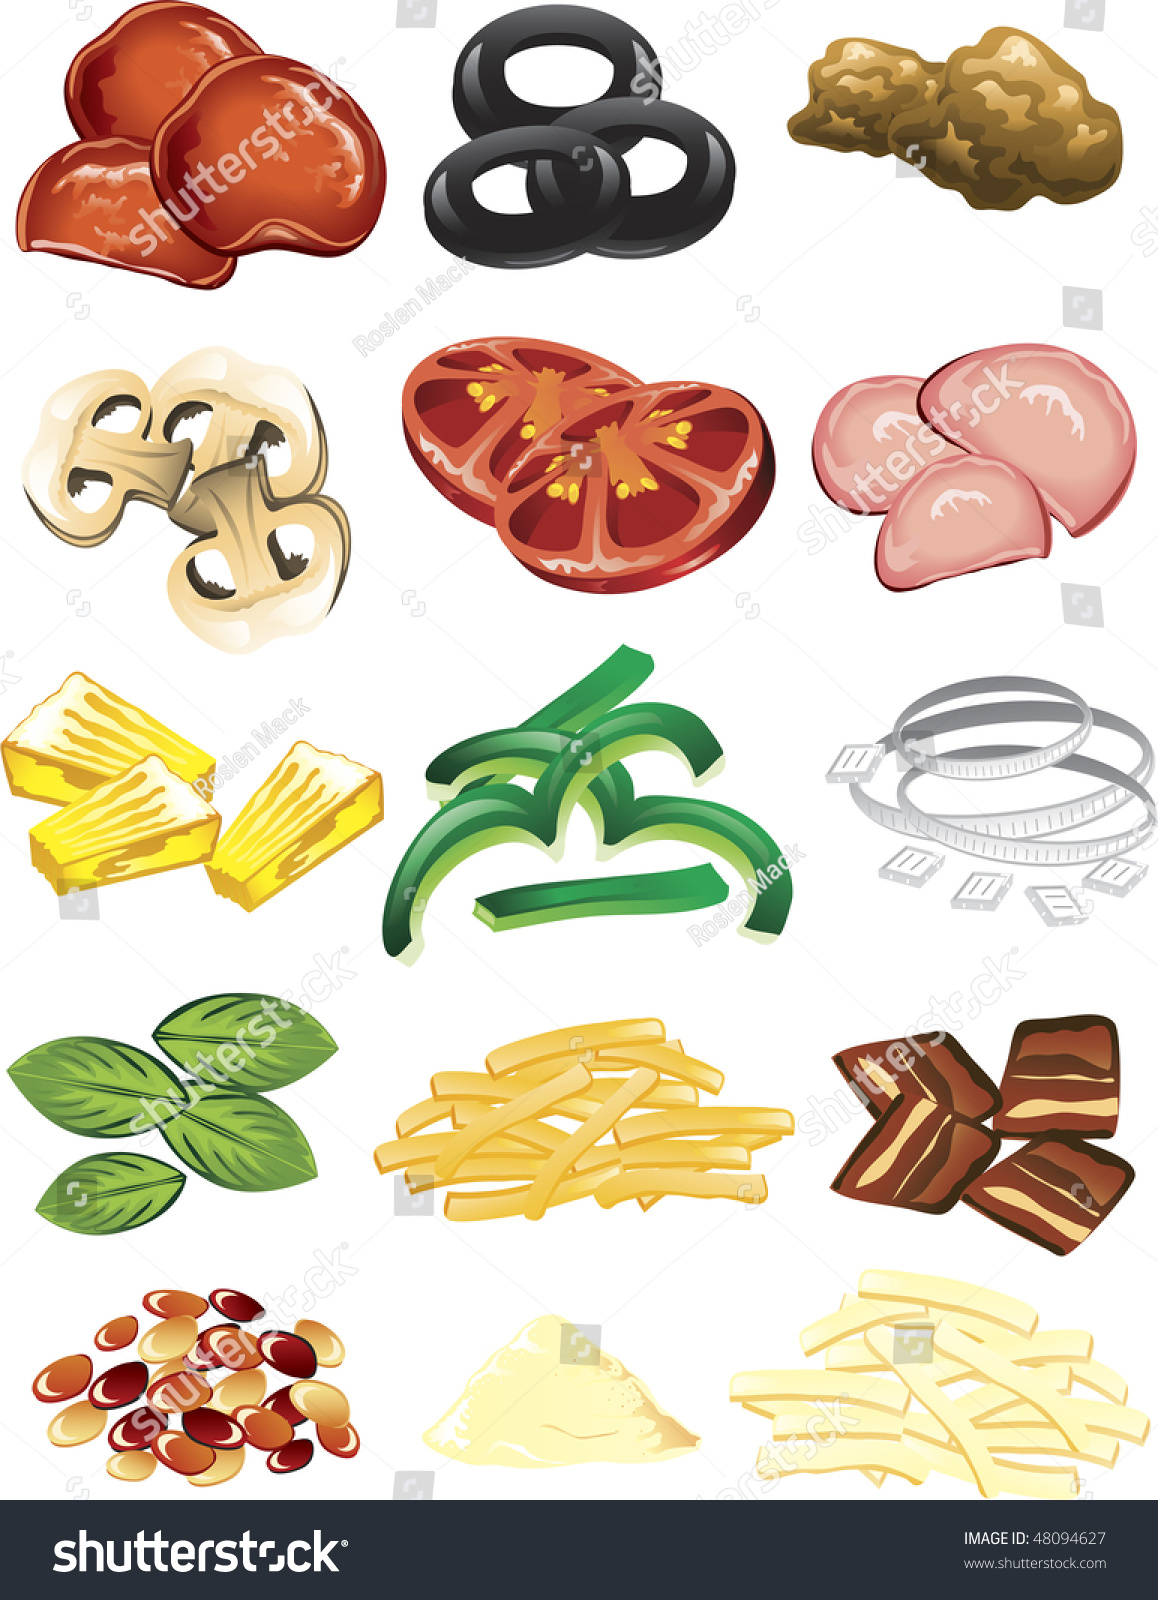 Illustration Of Different Pizza Toppings And Cheese ...